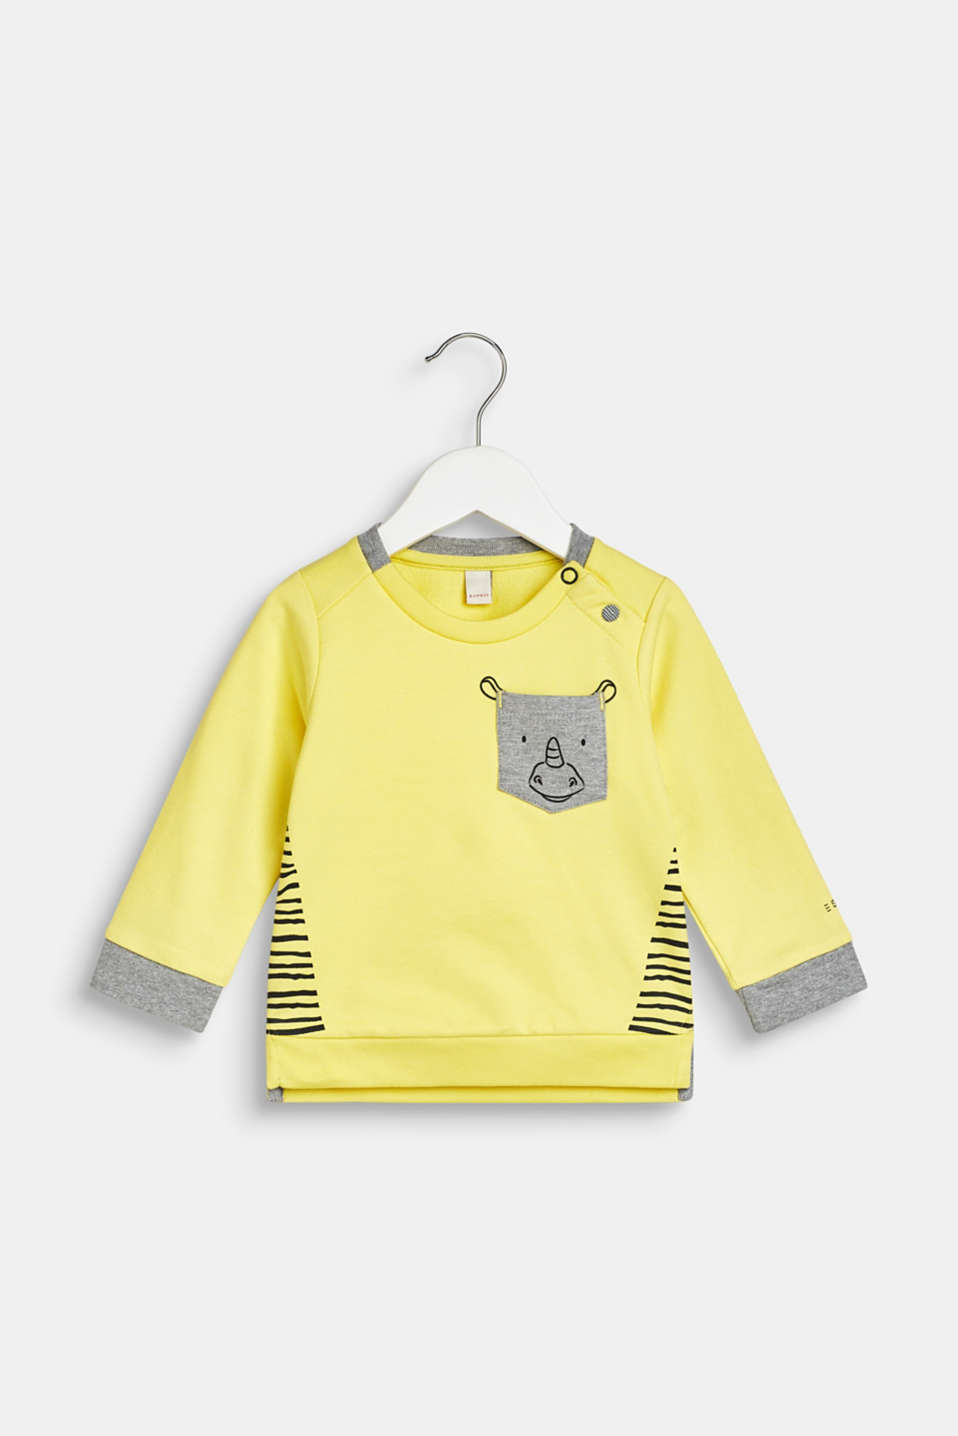 Esprit - Sweatshirt with a rhino print, 100% cotton